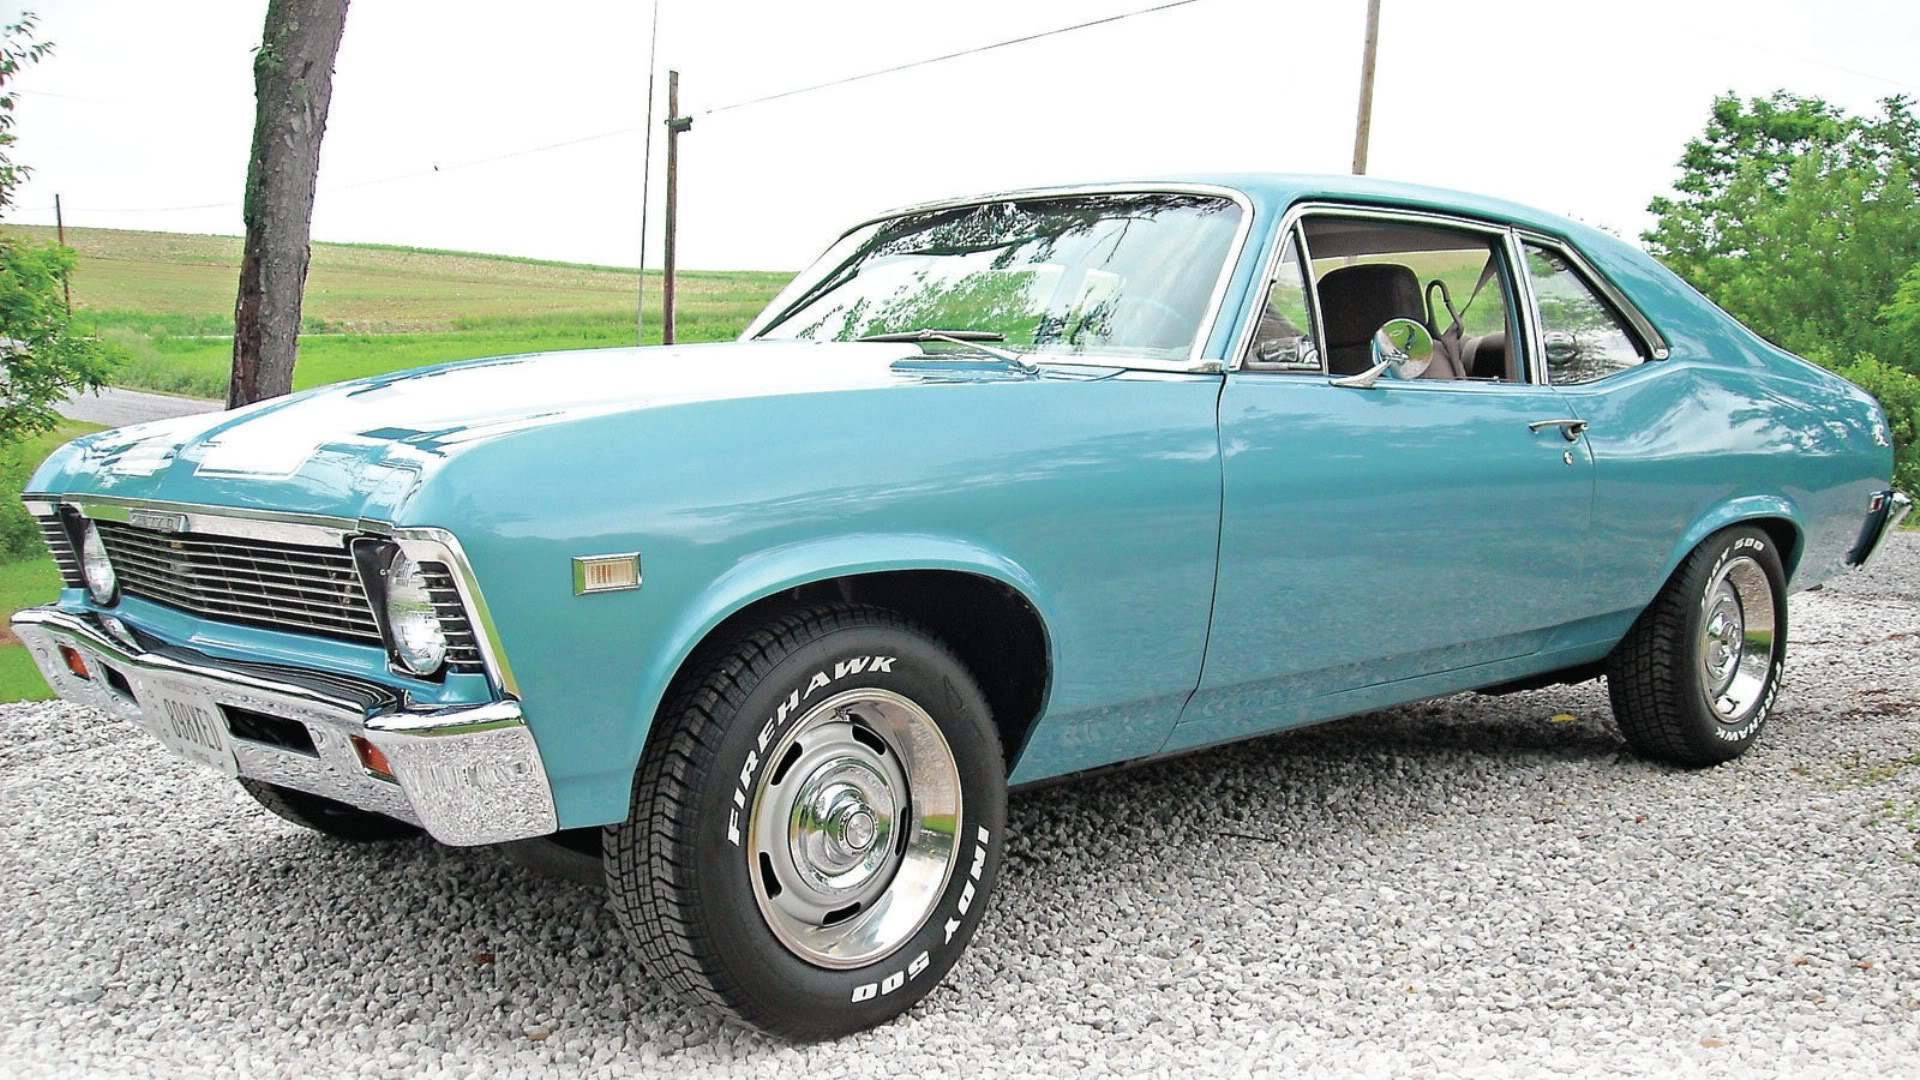 1968 Teal Chevrolet Nova Wallpaper 1920x1080 36943